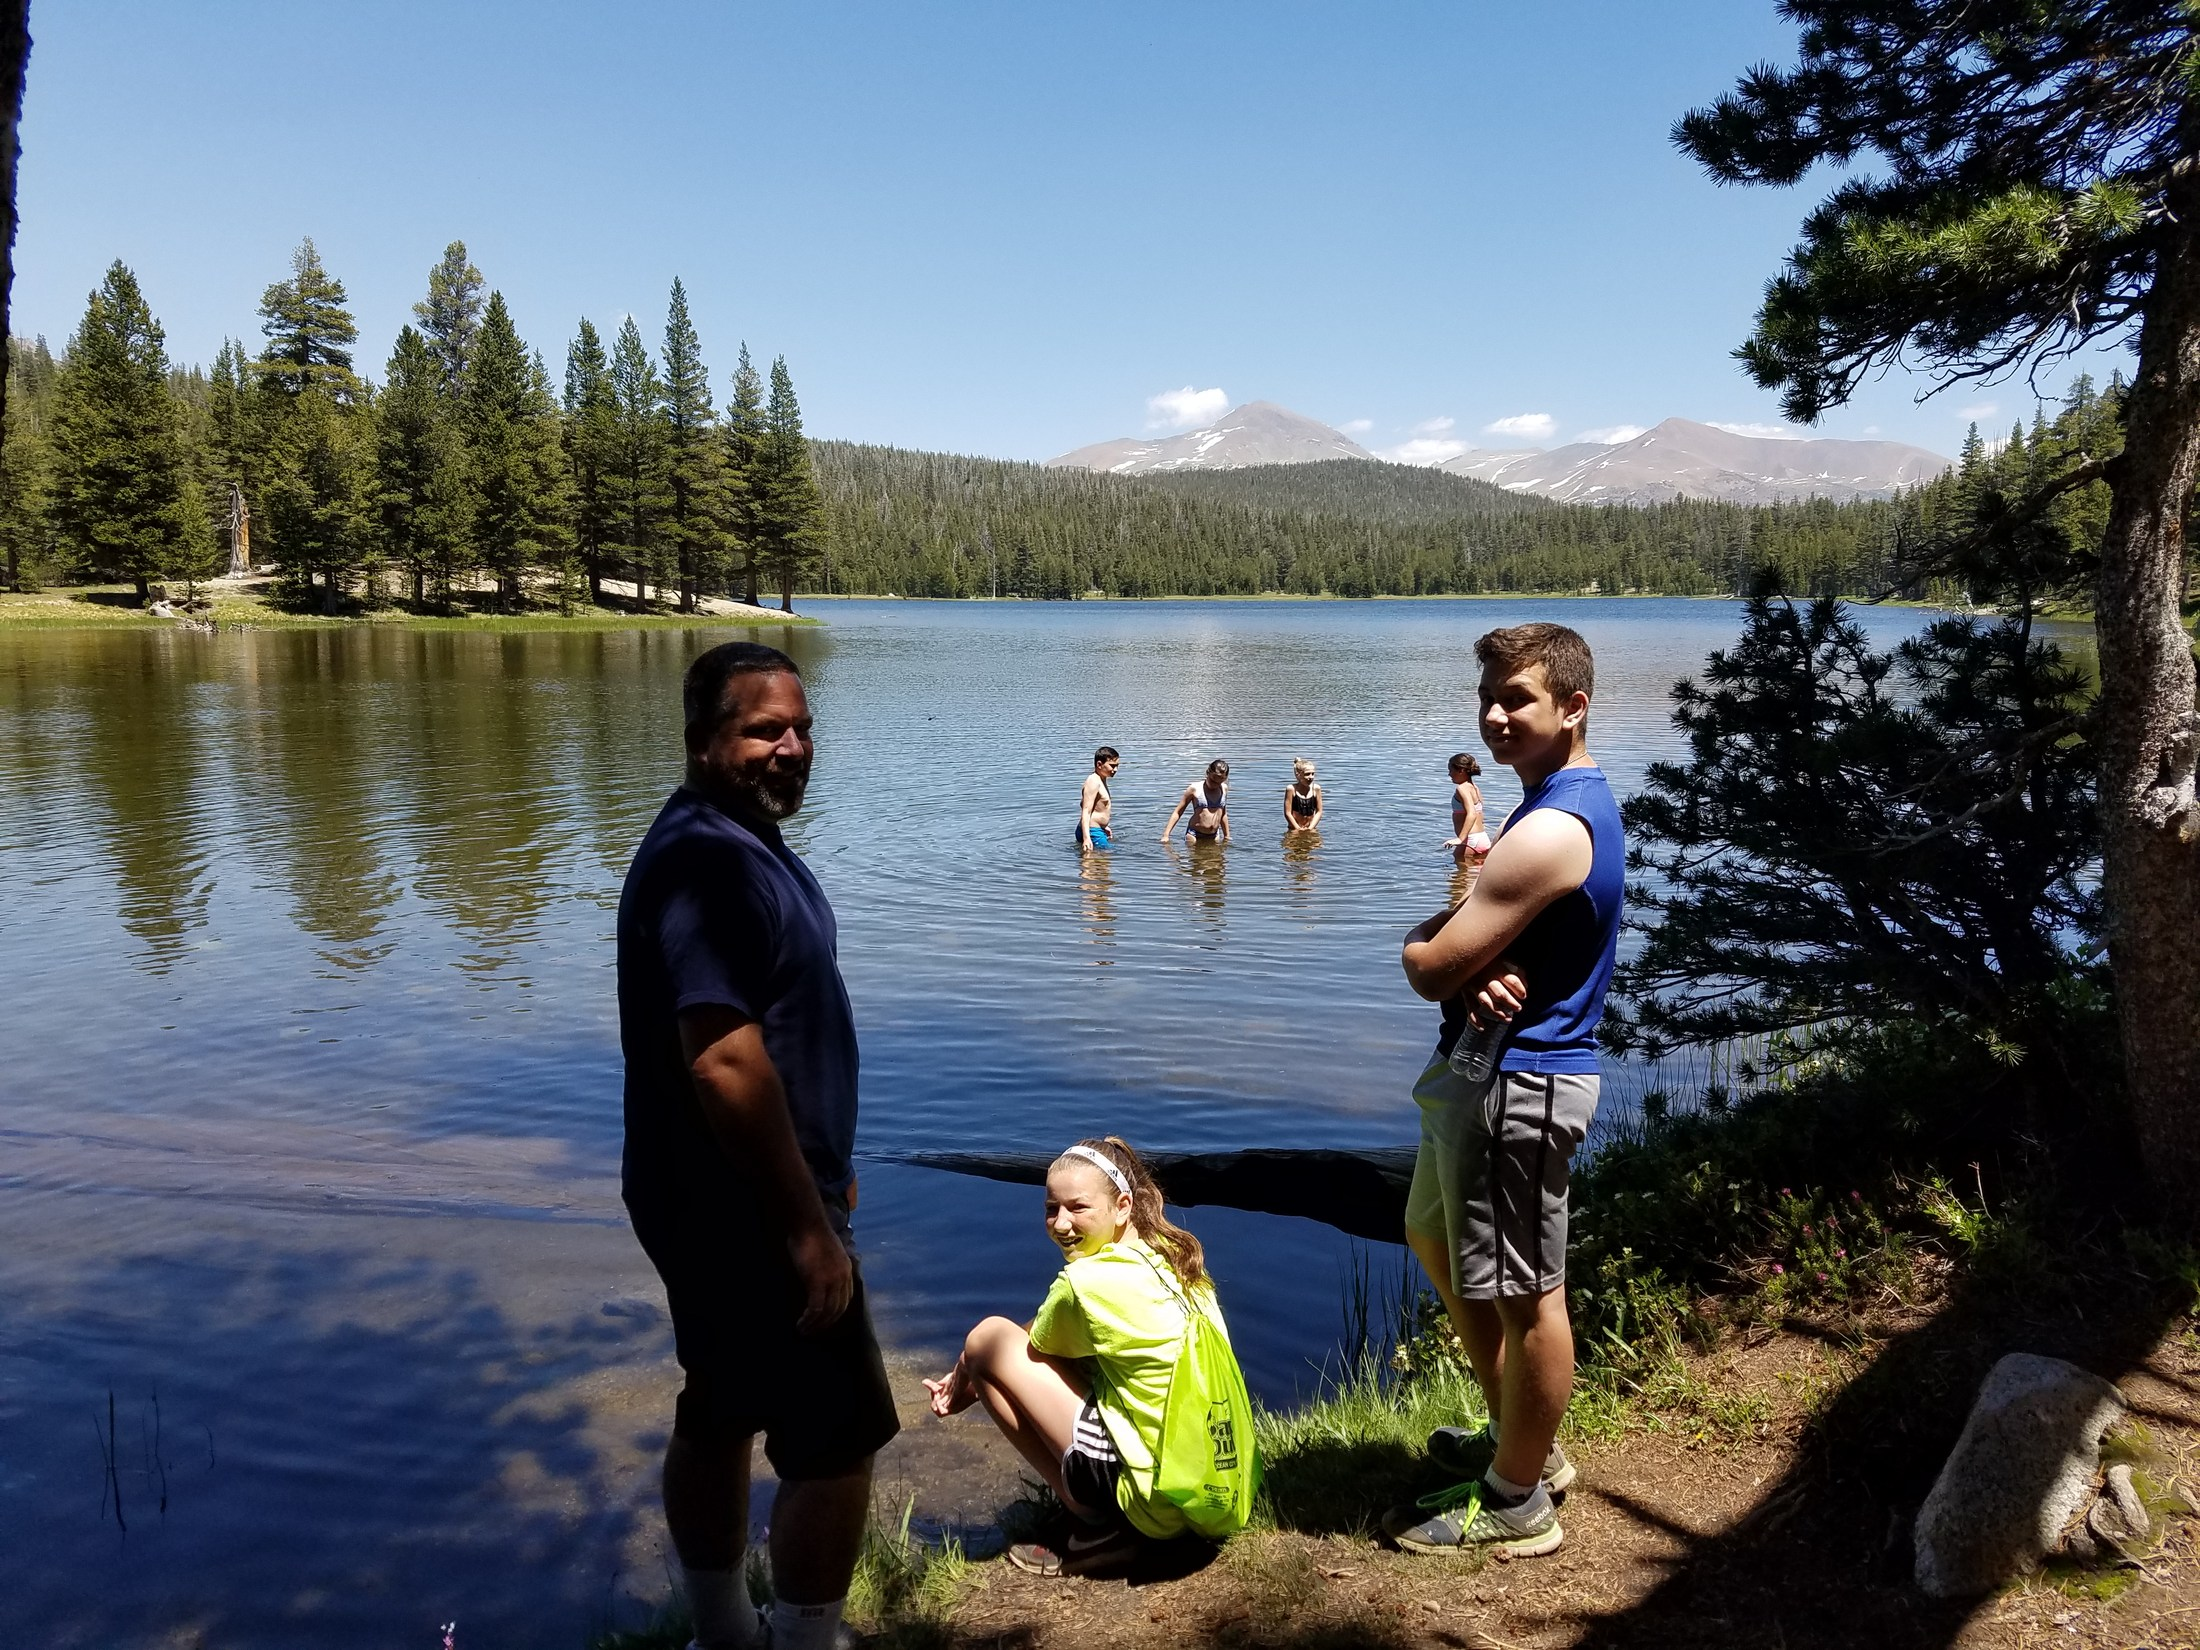 Yosemite National Park with my family